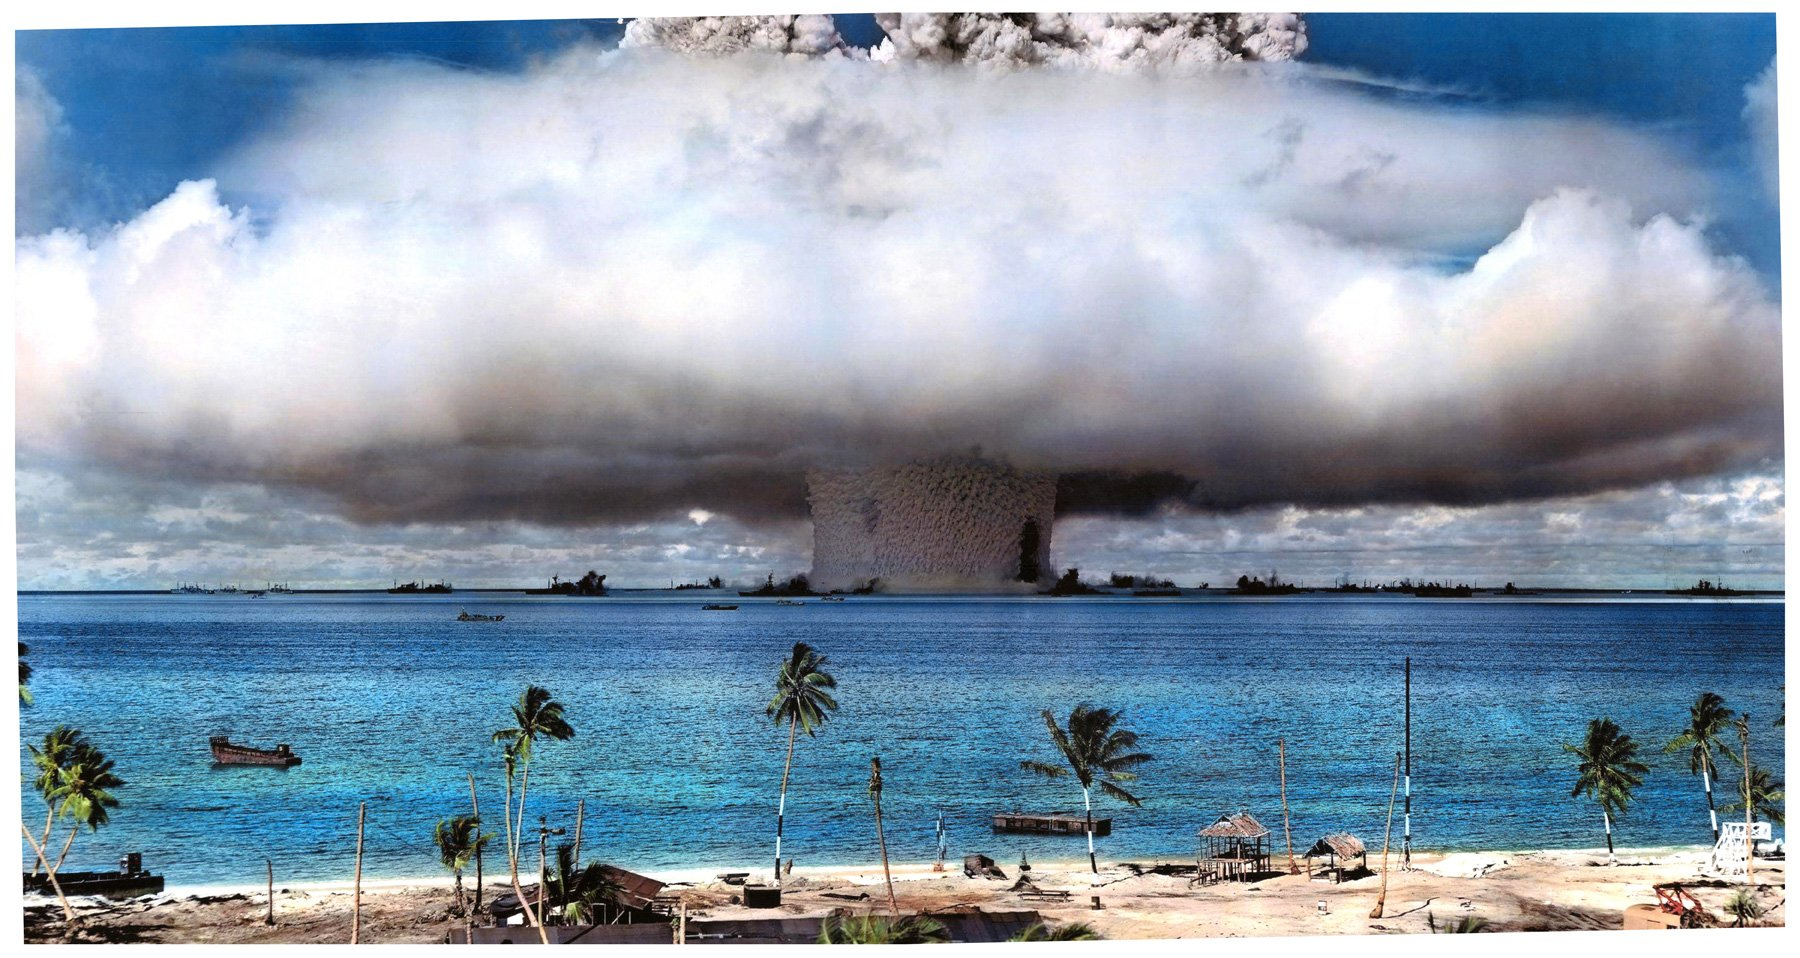 70th Anniversary of Operation Crossroads Atomic Tests in Bikini Atoll, July  1946 | National Security Archive